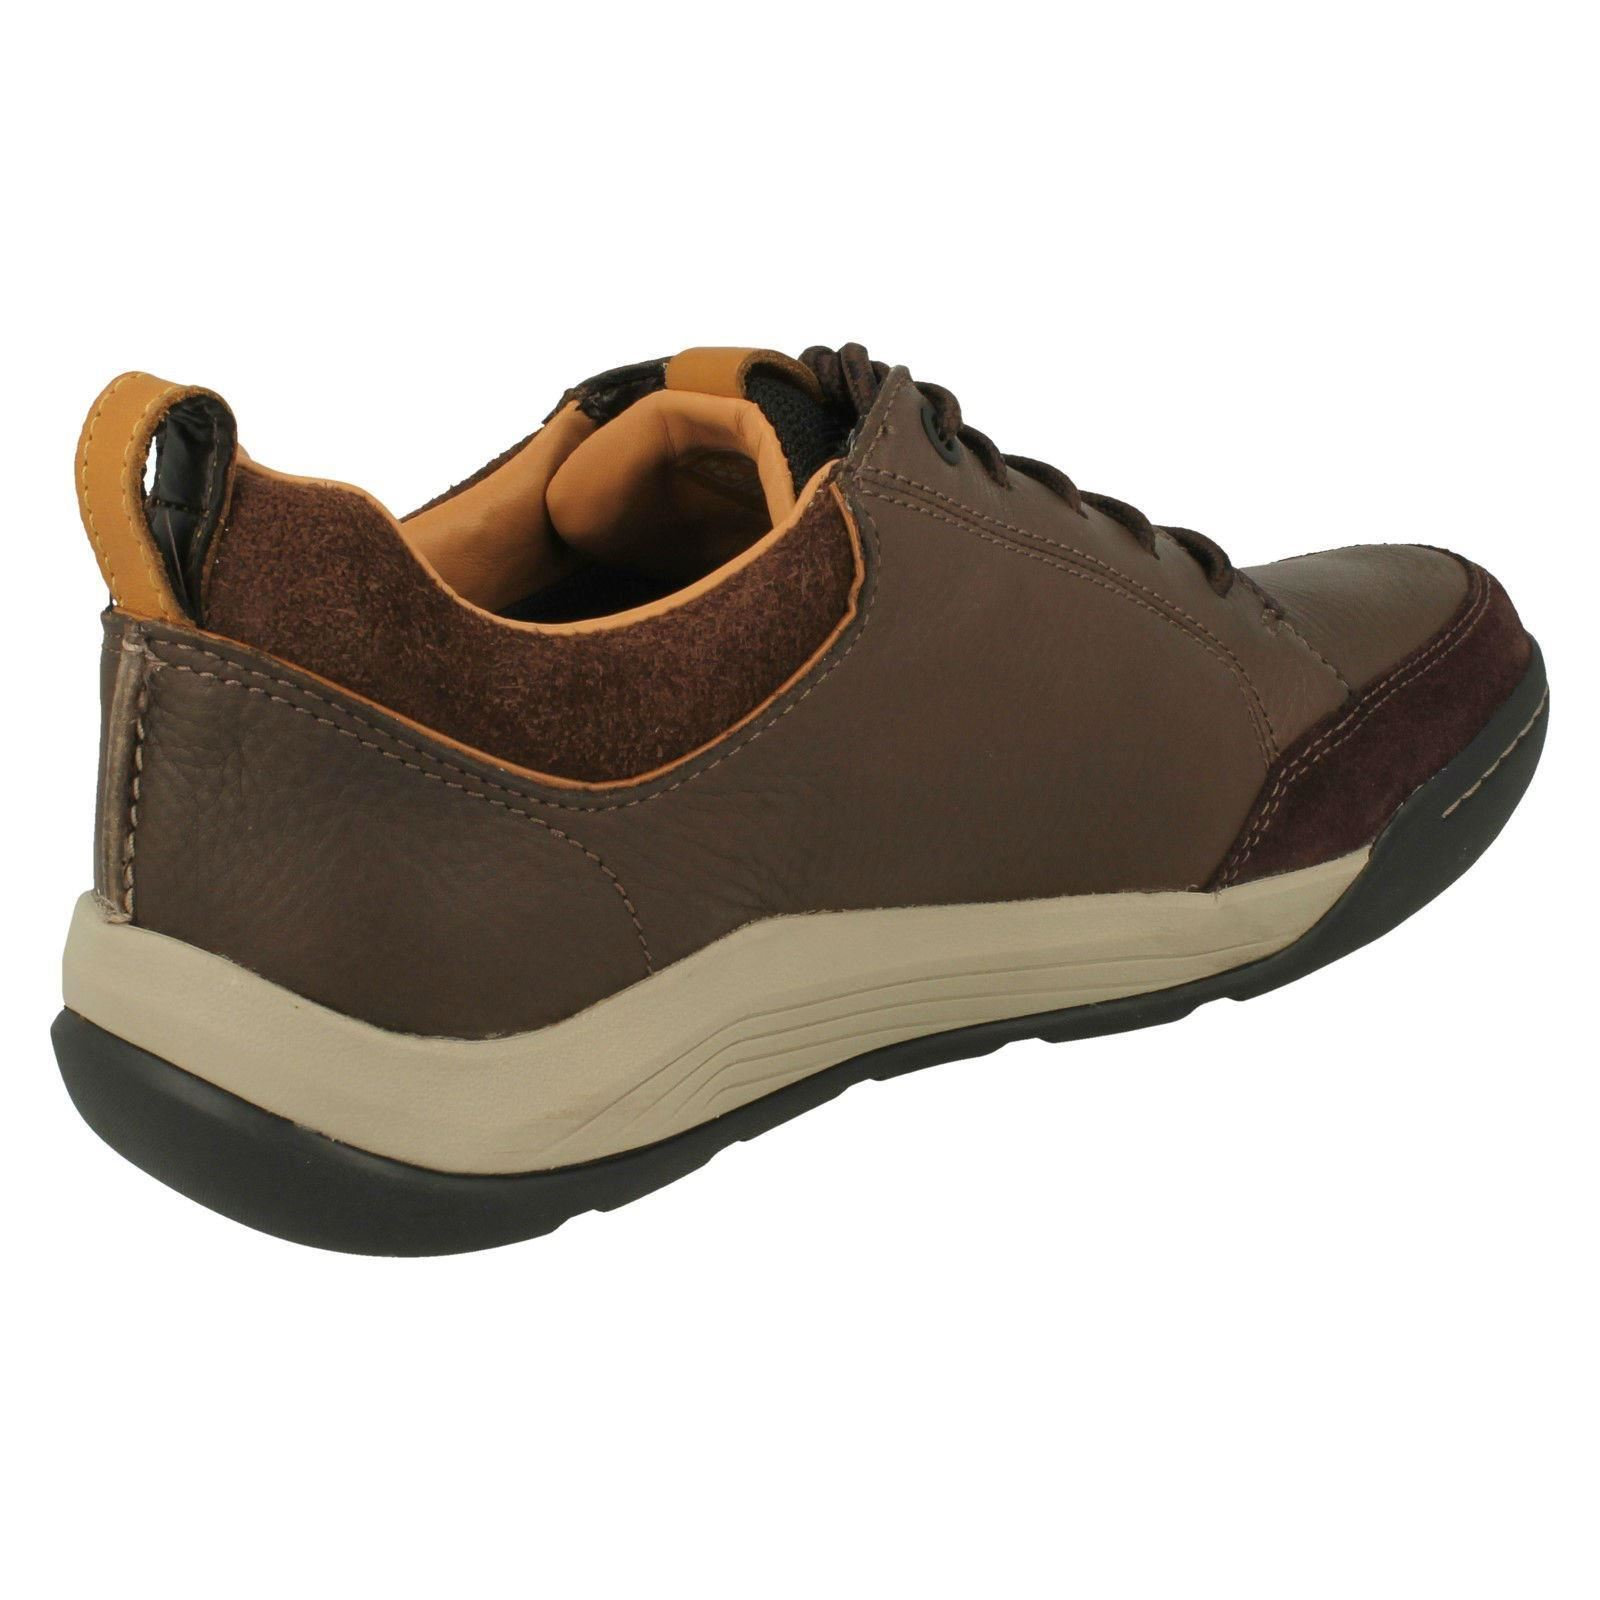 190f24e7219 Mens Clarks Casual Gore-Tex Shoes  Ashcombe Bay GTX